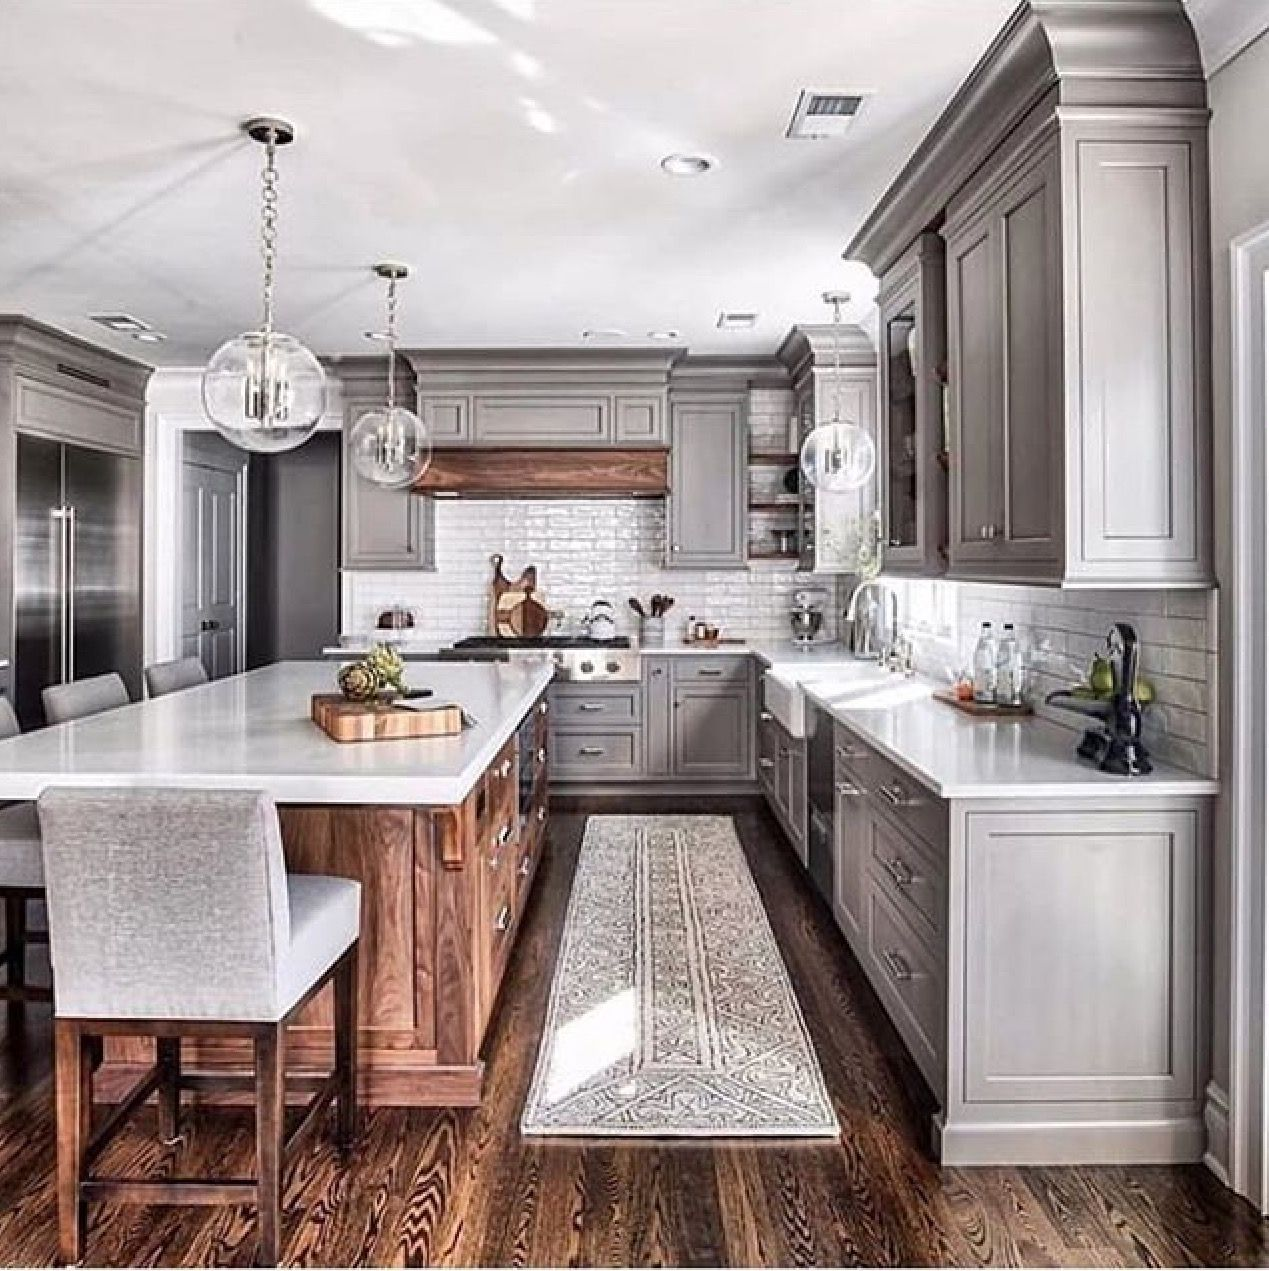 Pin By 𝒂𝒍𝒚𝒔𝒆𝒍𝒂𝒏𝒂𝒆𝒆 On Interiors Projects Farmhouse Kitchen Remodel Kitchen Remodel Small Grey Kitchen Designs